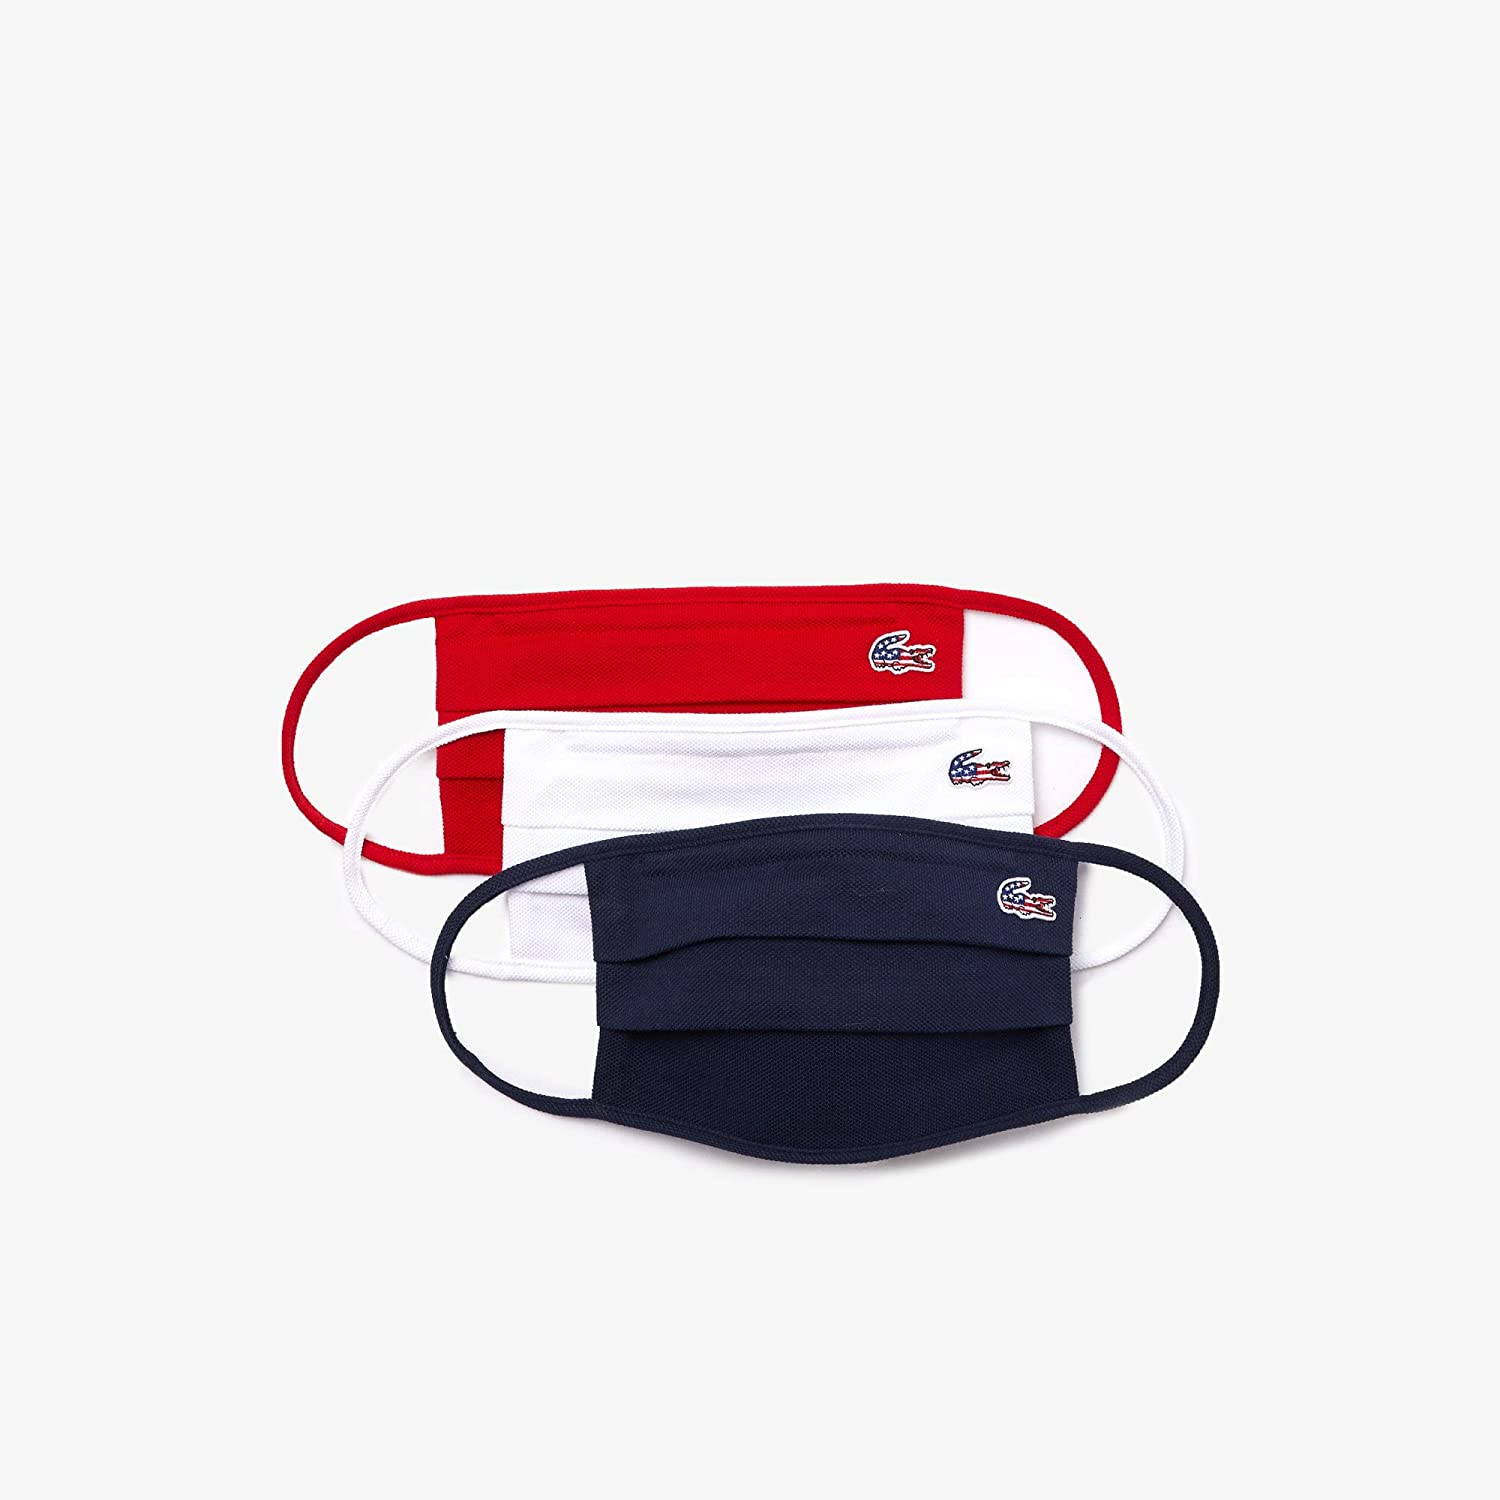 Lacoste Cotton Piqué Face Mask